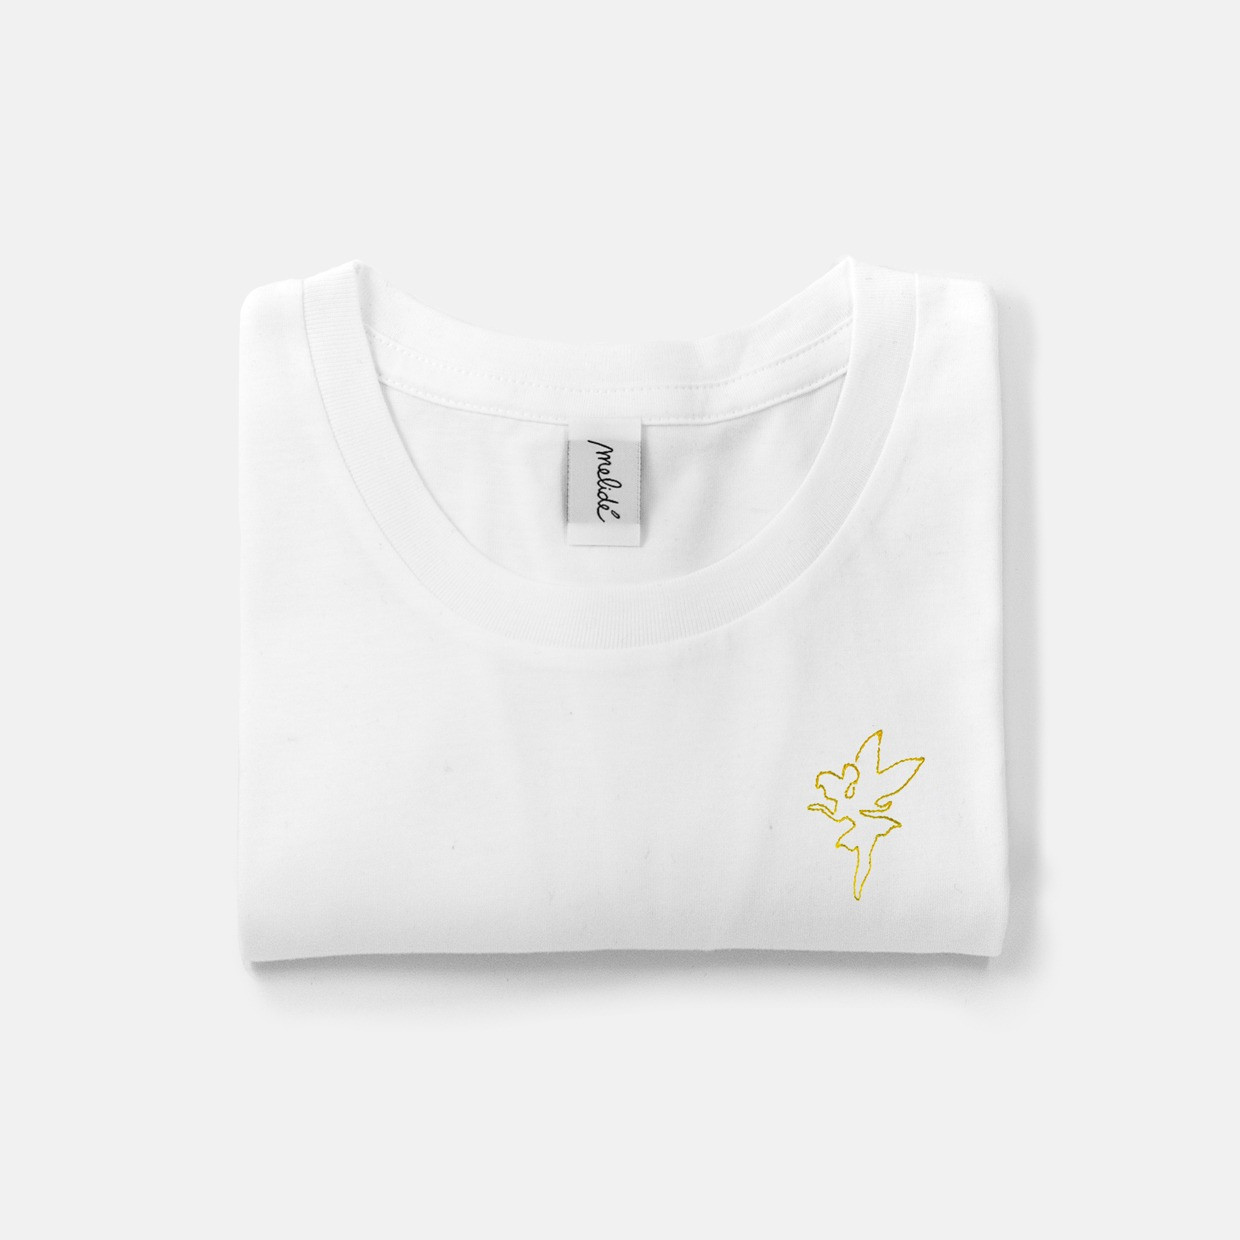 The TRILLY ultimate tee